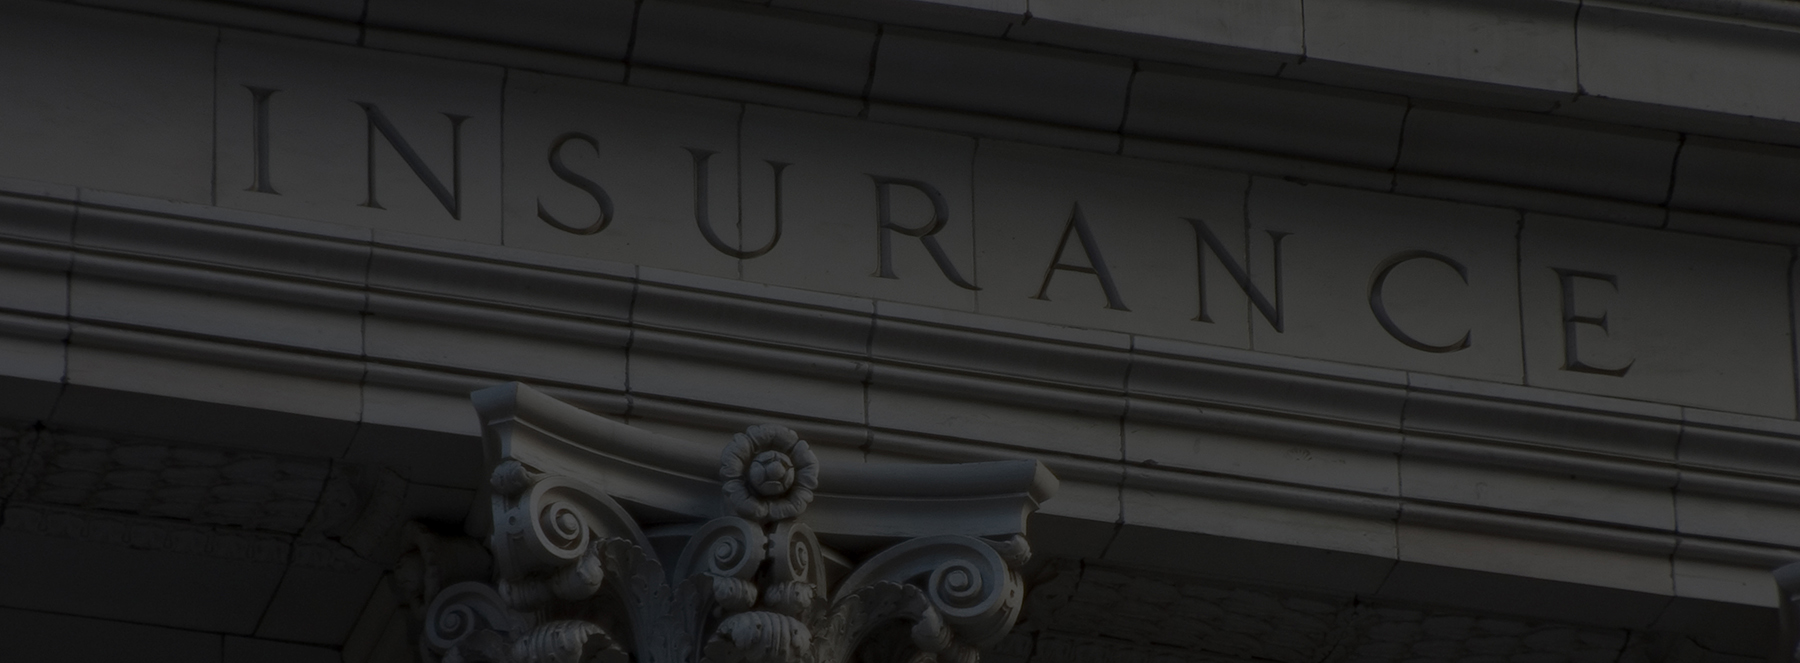 InsuranceHomeBanner